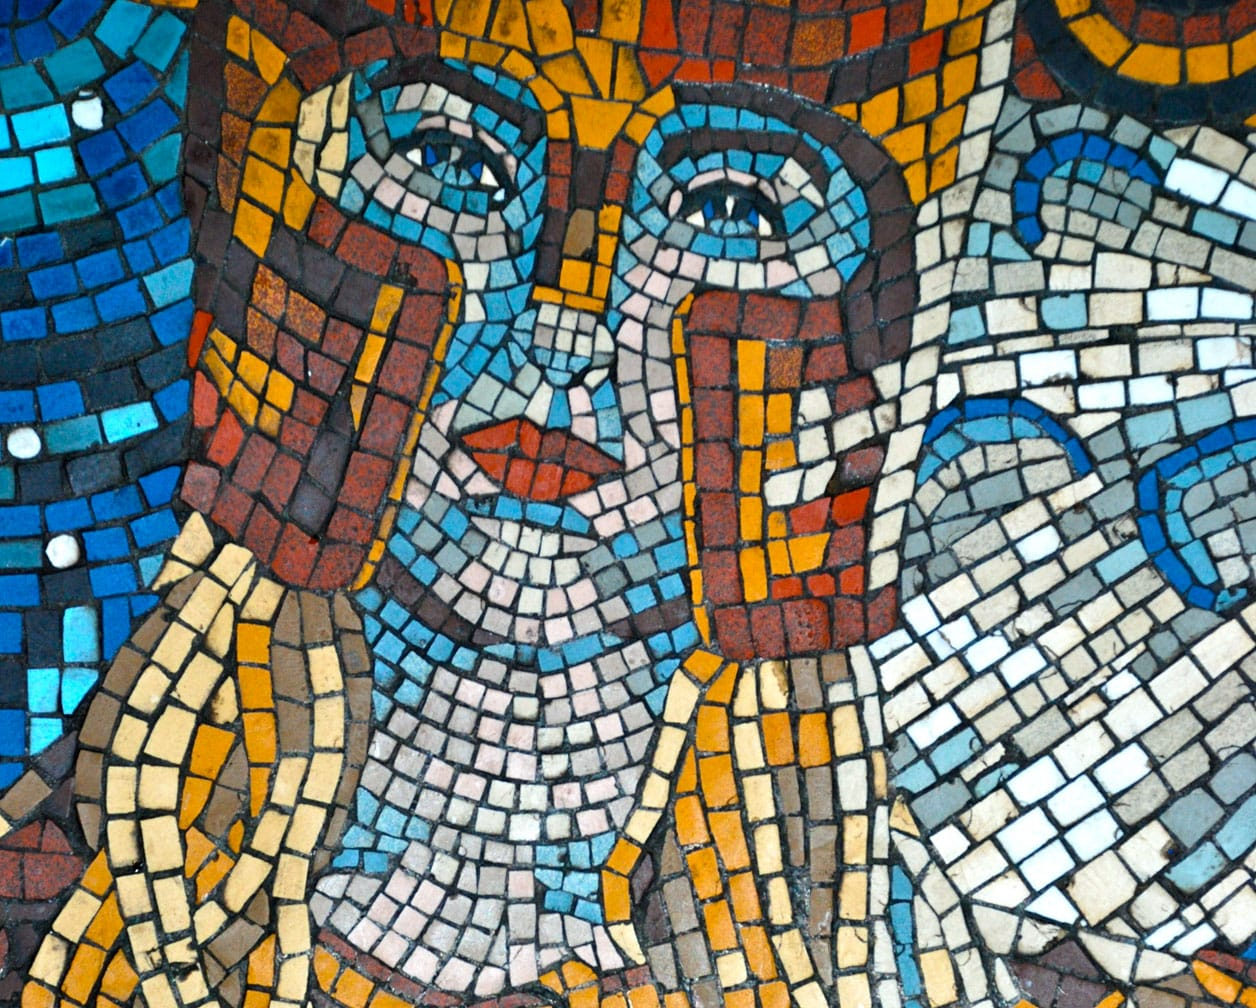 Colorful mosaic of a face on the Belmond British Pullman train